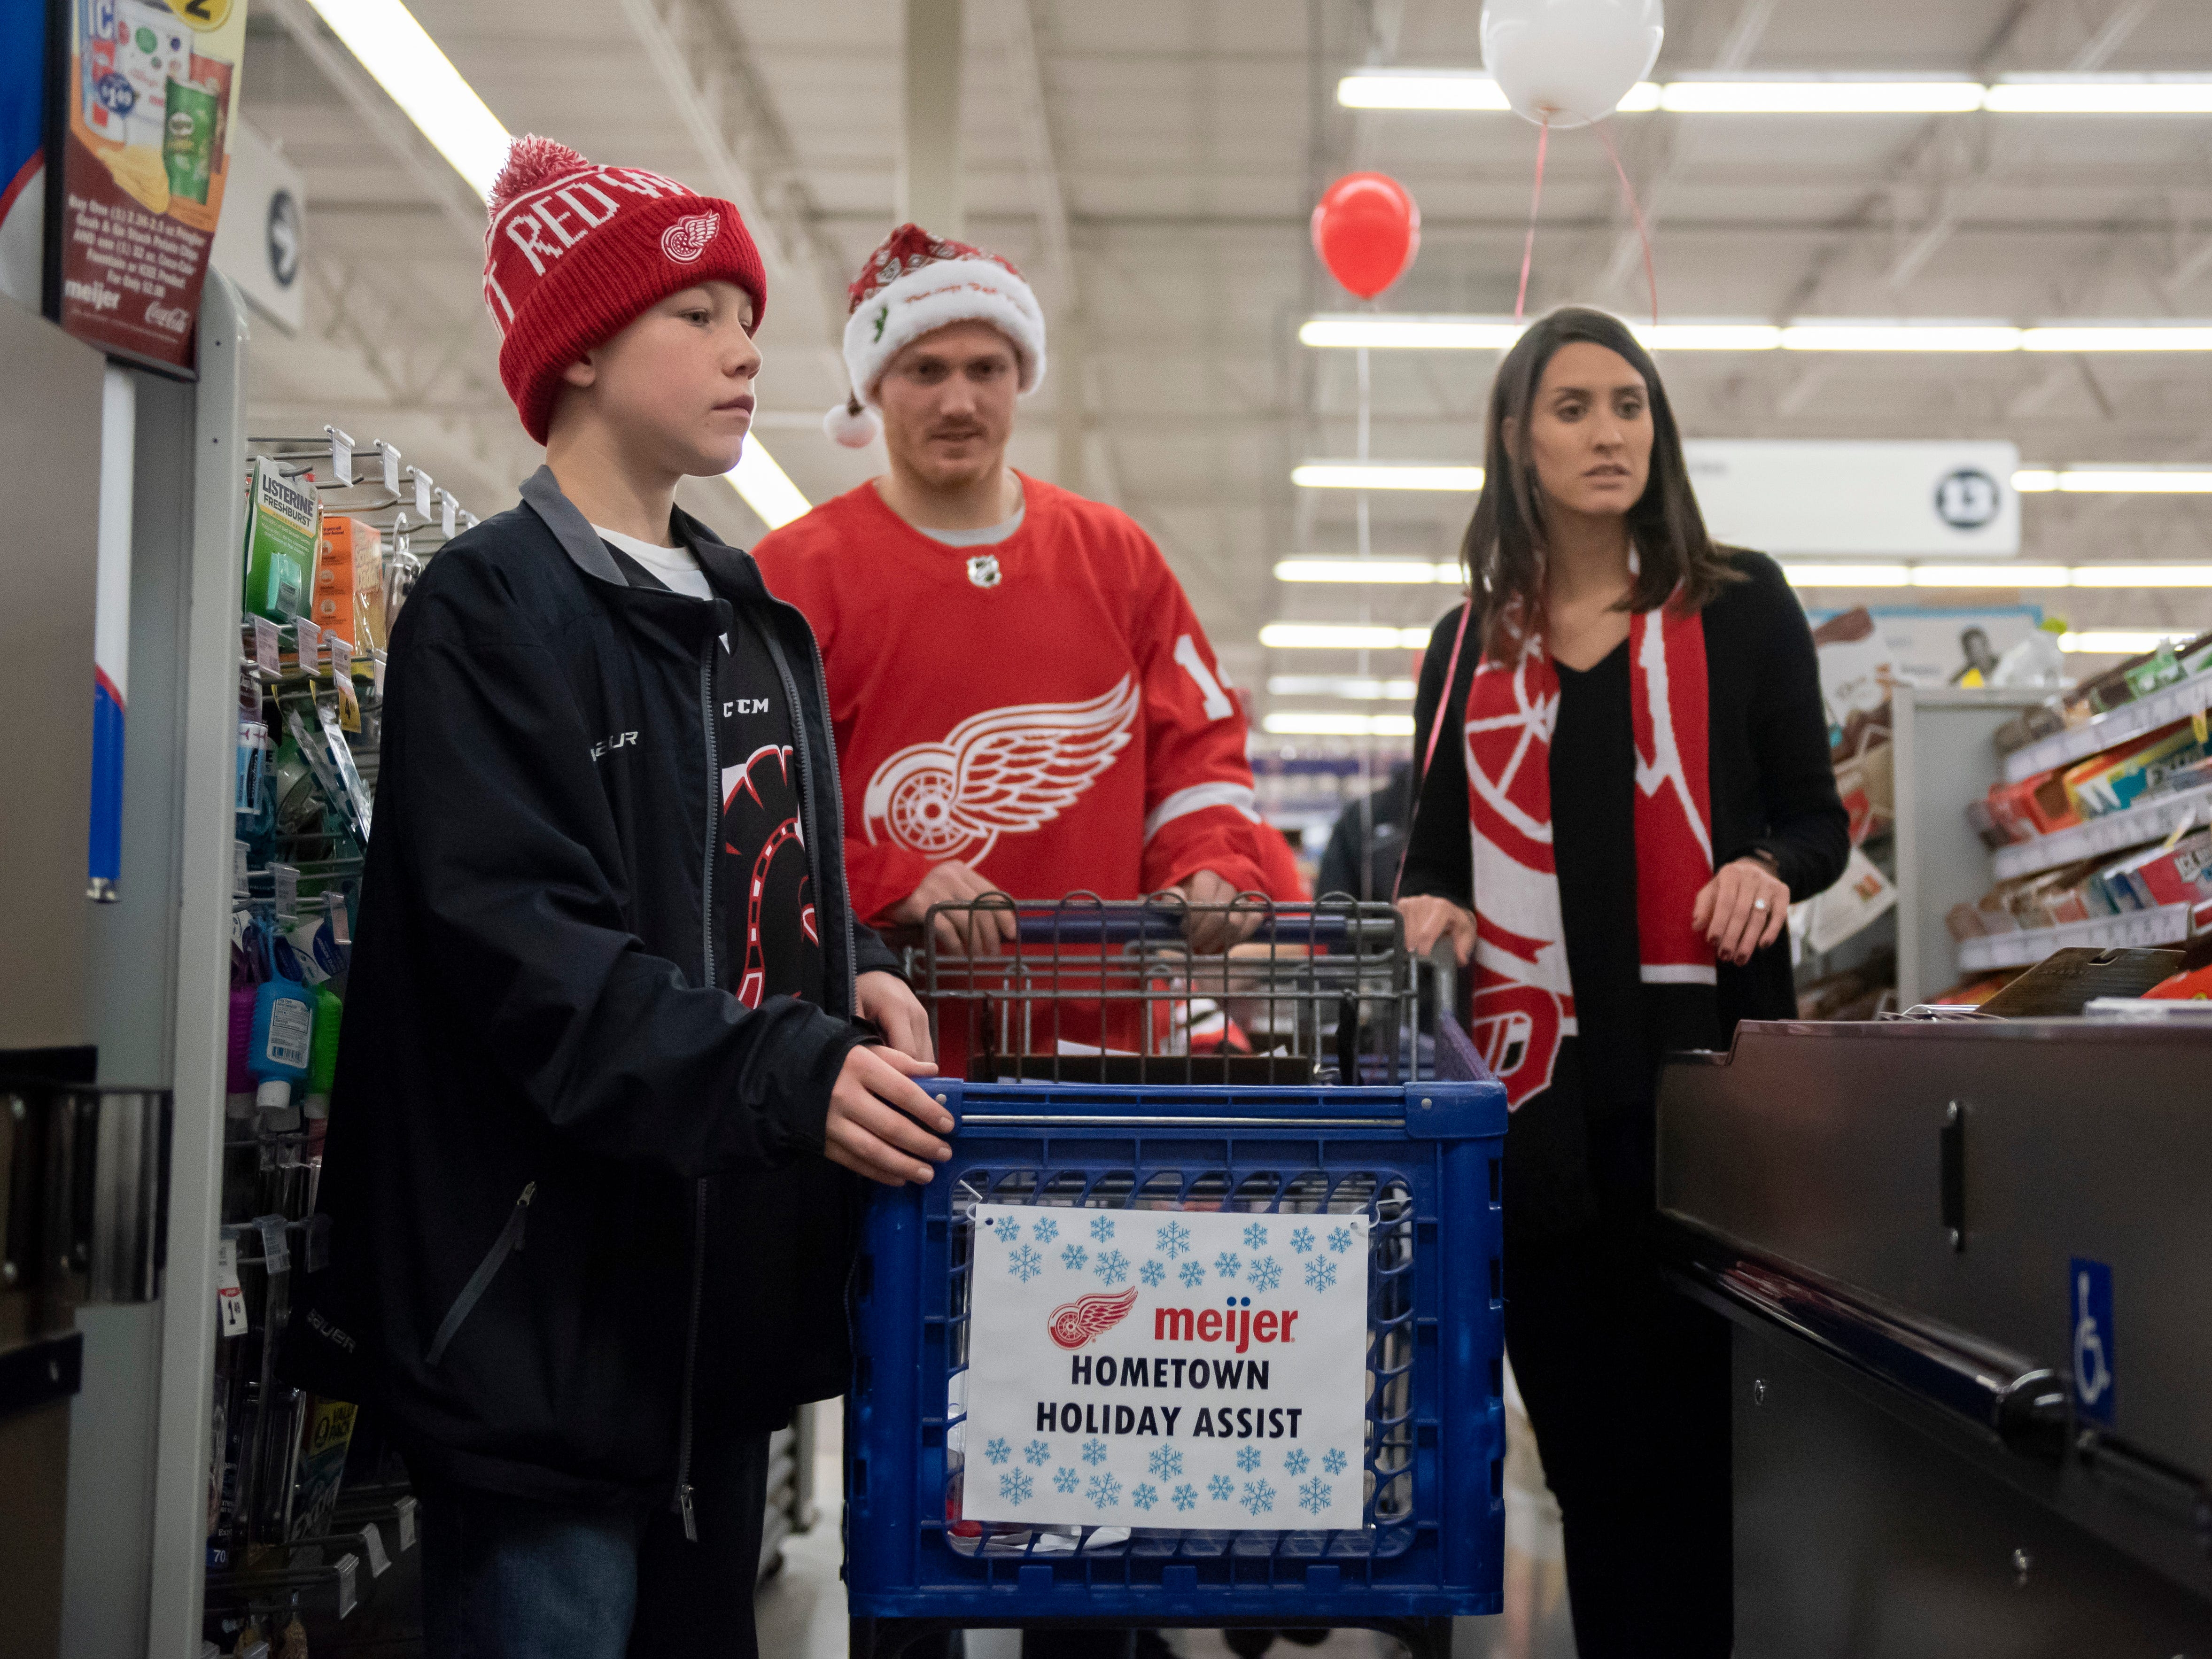 Colby Kramp, 11 of Allen Park, Red Wings center Gustav Nyquist and his wife Danielle Nyquist walk through the checkout aisle at the end of their trip.